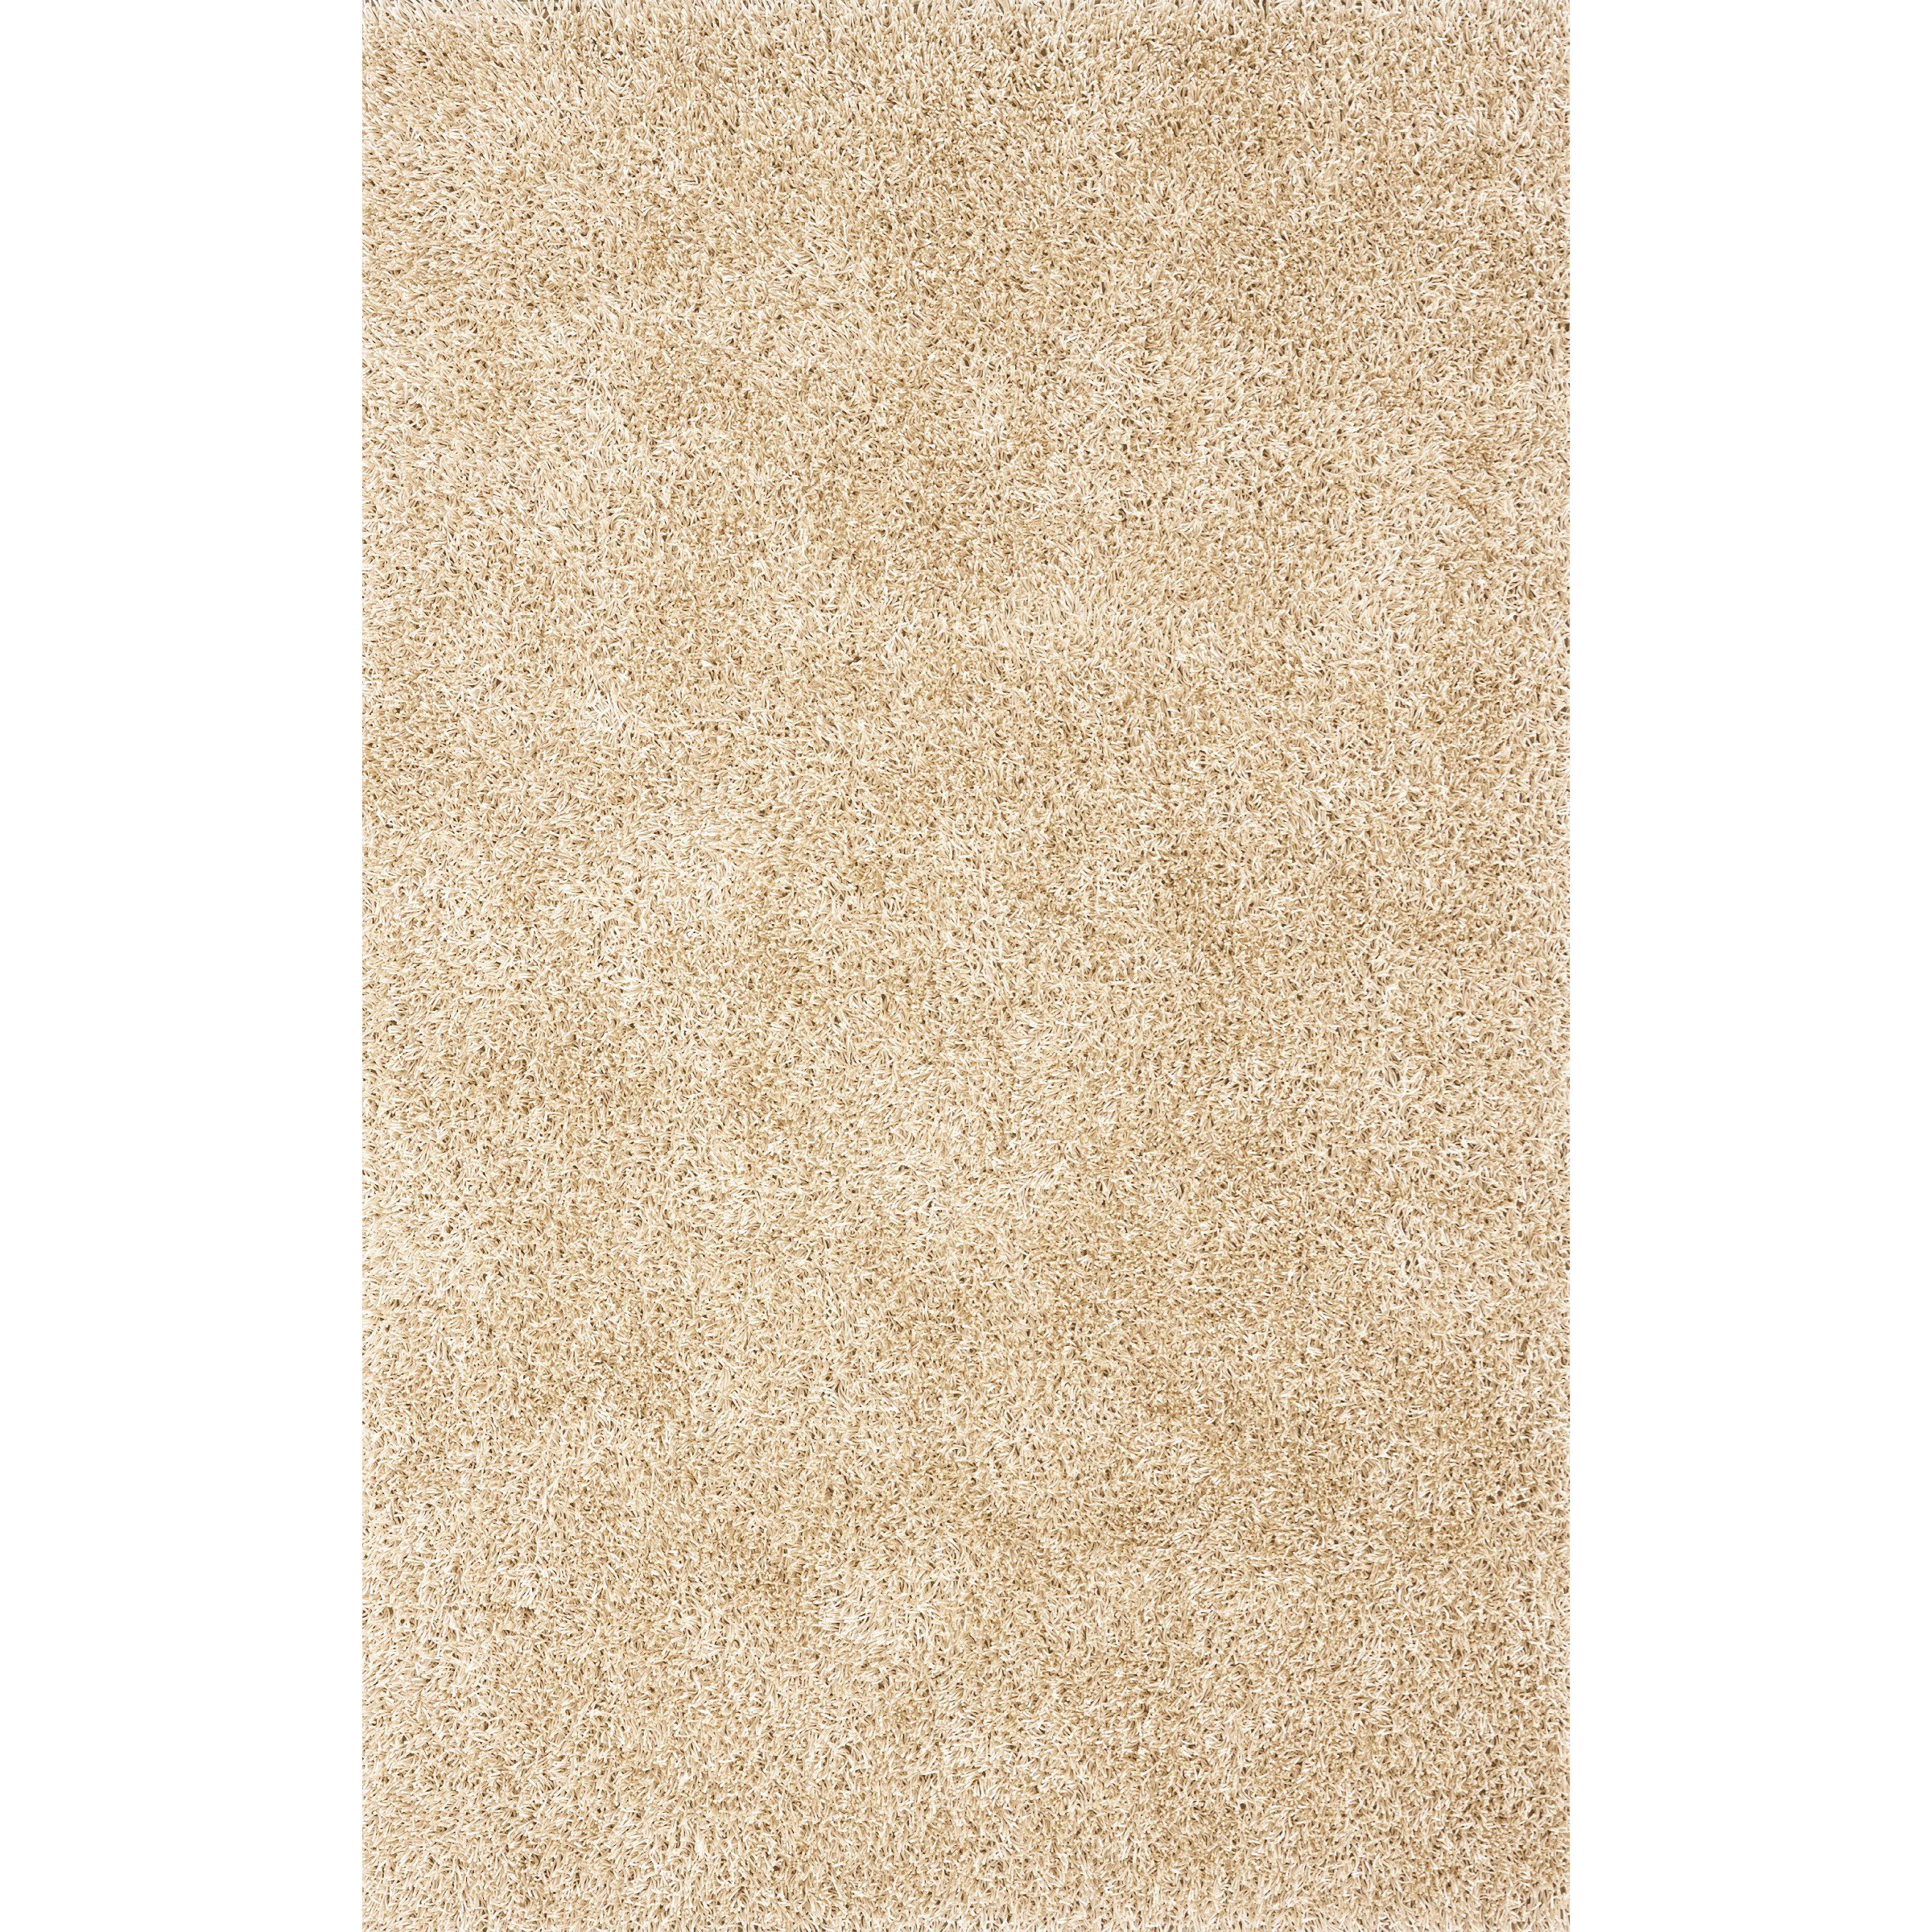 Dalyn Illusions Ivory 9'X13' Rug - Item Number: IL69IV9X13